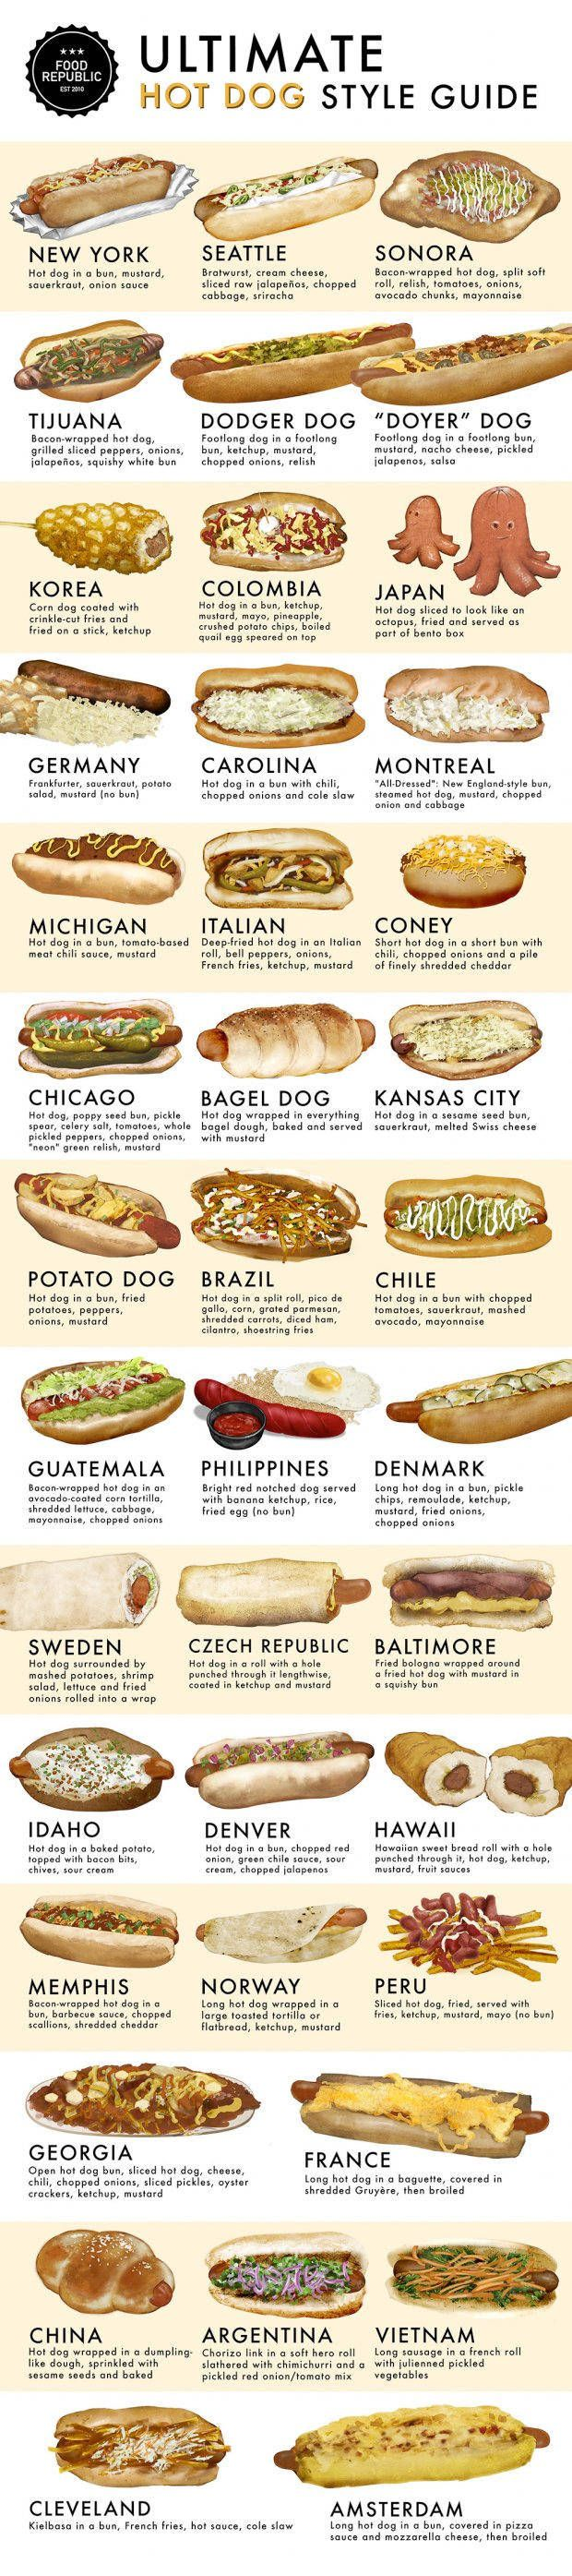 Here's How People In 40 Different Parts Of The World Eat Hot Dogs - OMG Facts - The World's #1 Fact Source